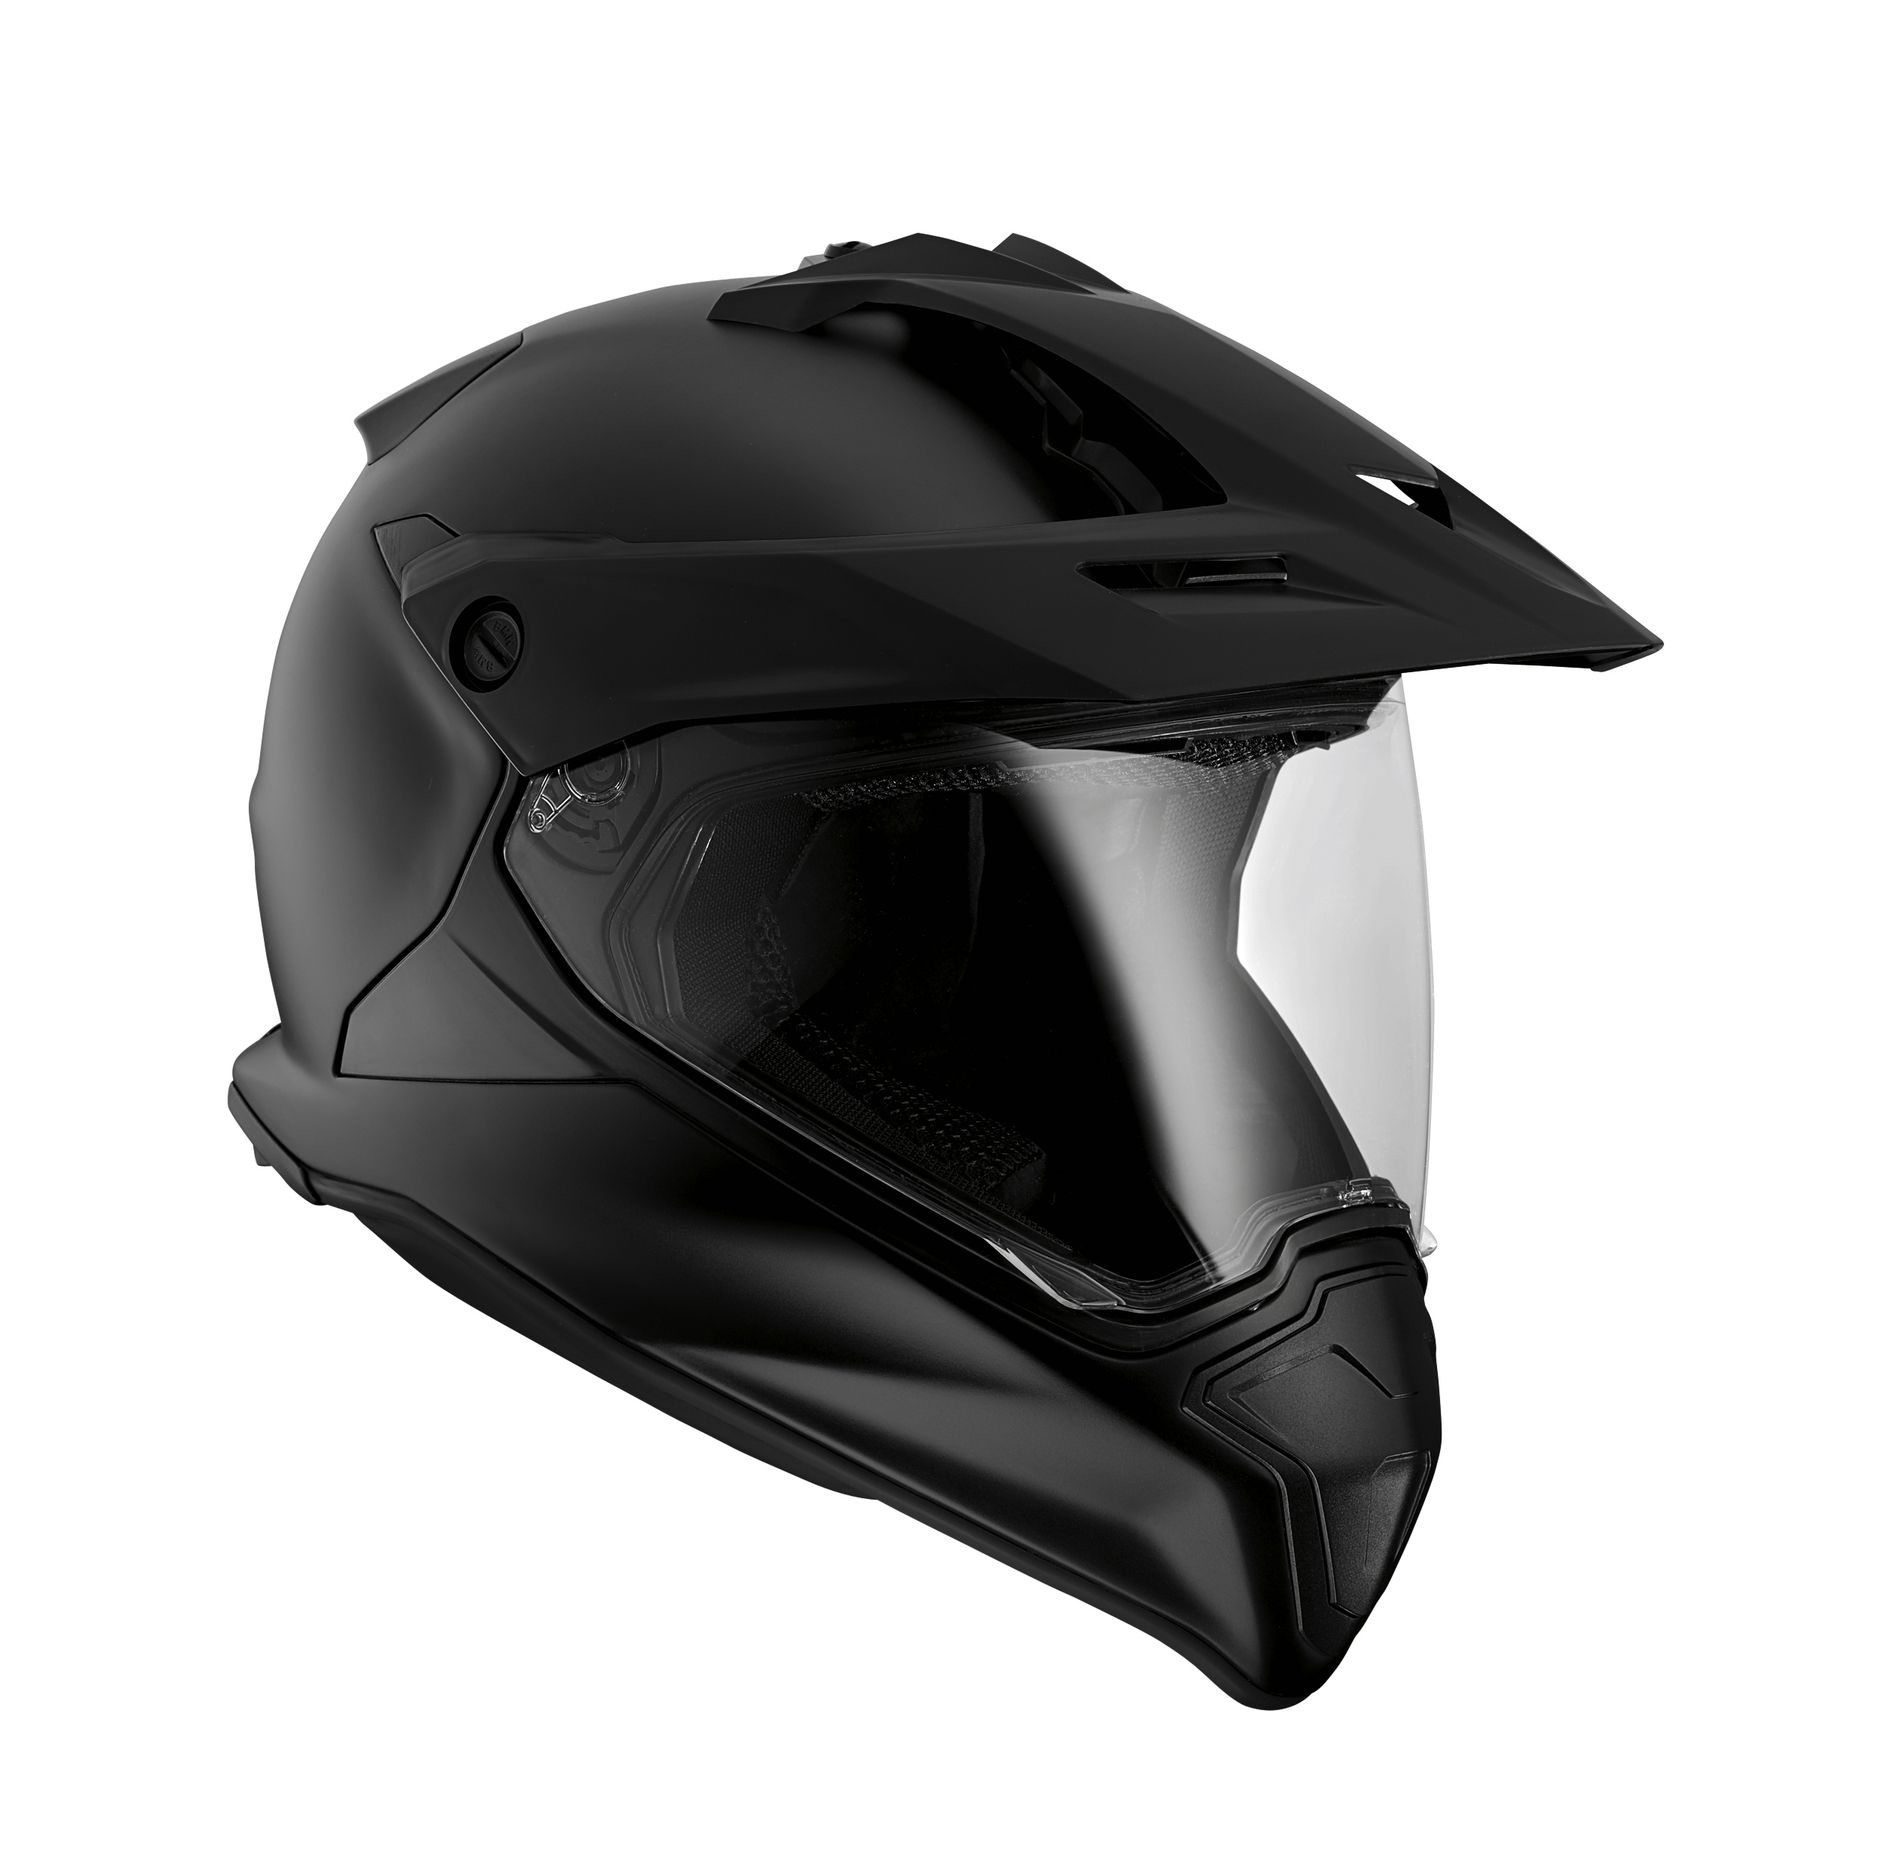 bmw helmets nouveau casque gs moto bmw. Black Bedroom Furniture Sets. Home Design Ideas